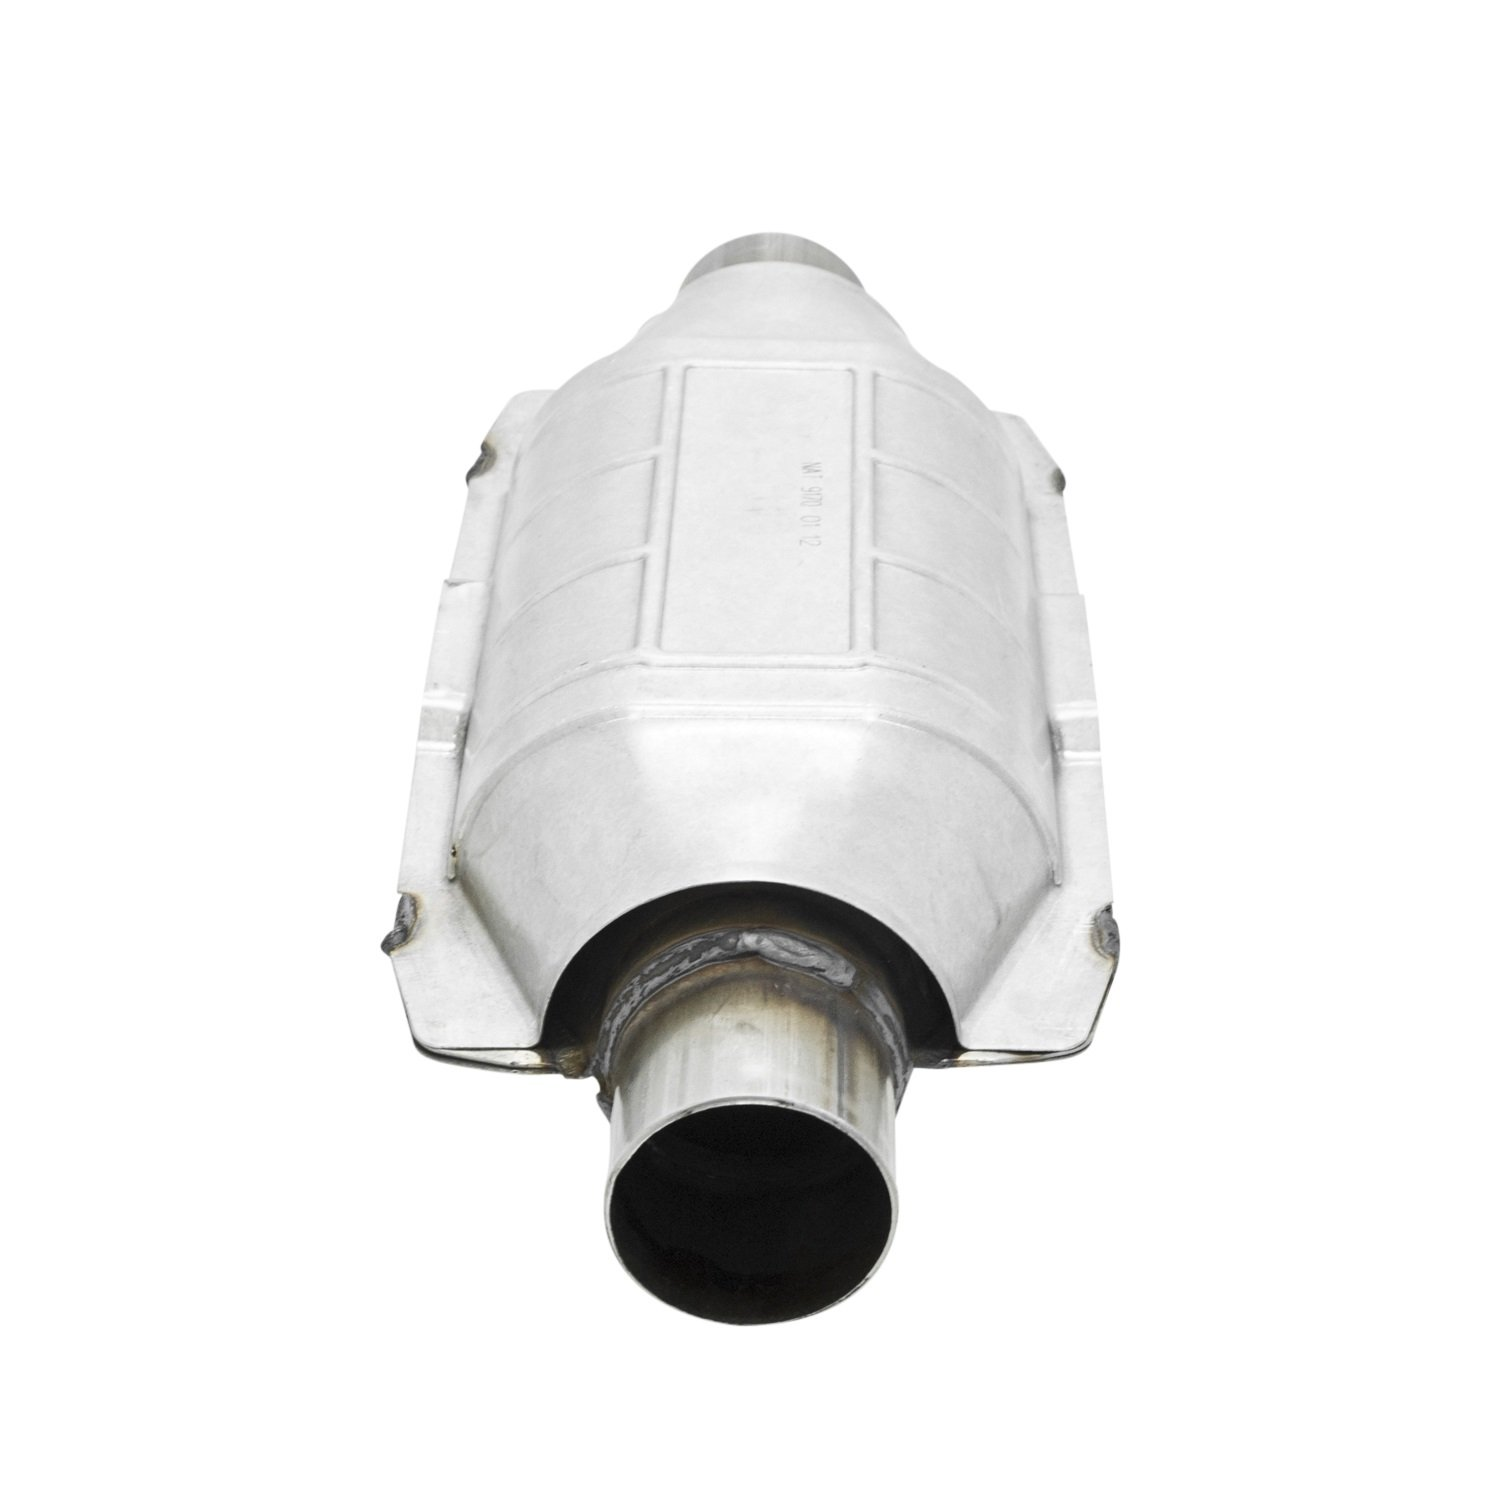 Flowmaster 2250225 225 Series 2.5 Inlet//Outlet Universal Catalytic Converter